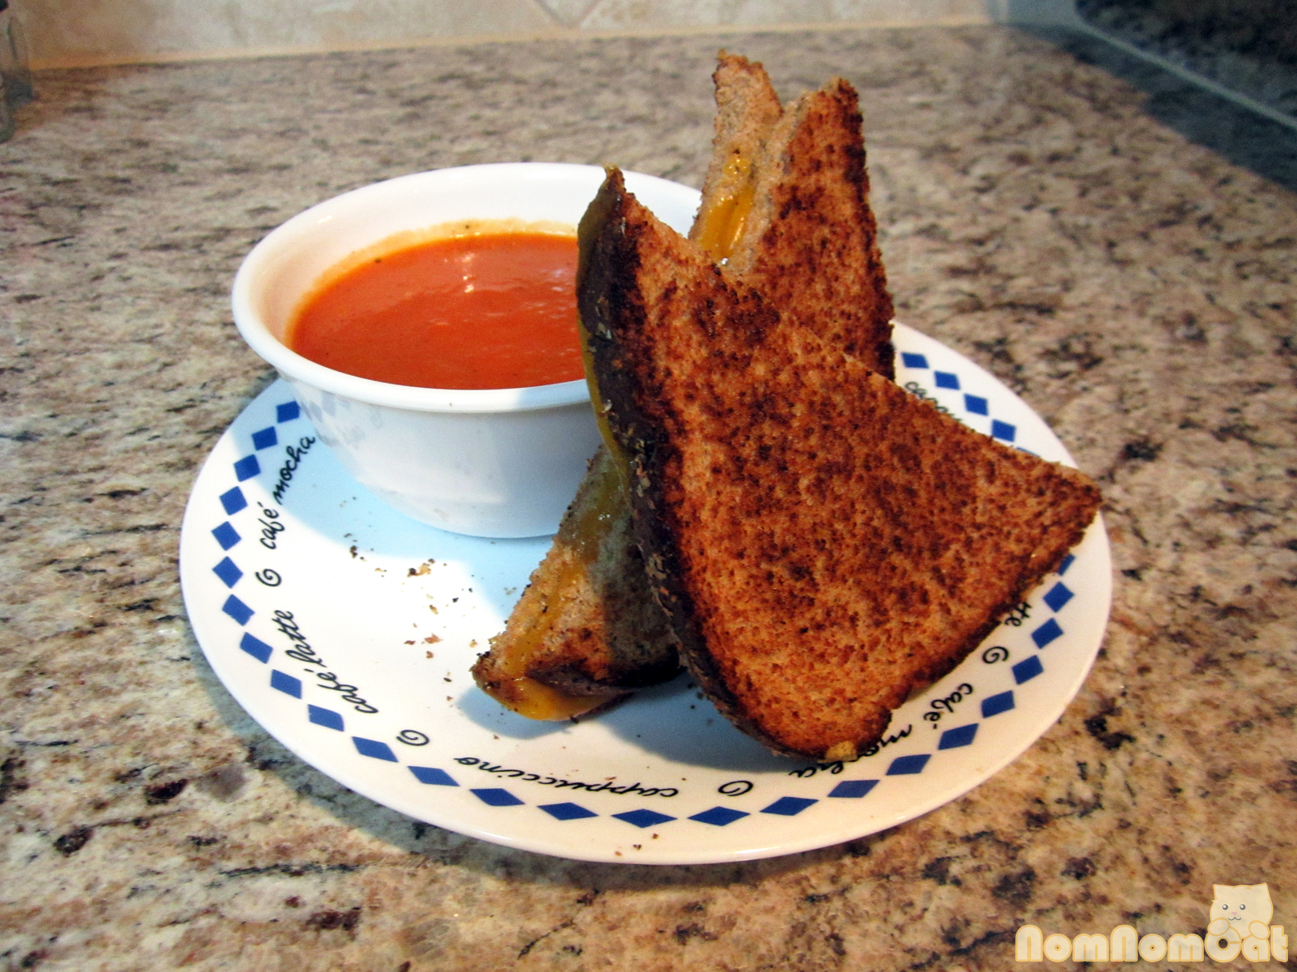 Comfort Food: Grilled Cheese and Tomato Soup | nom nom cat